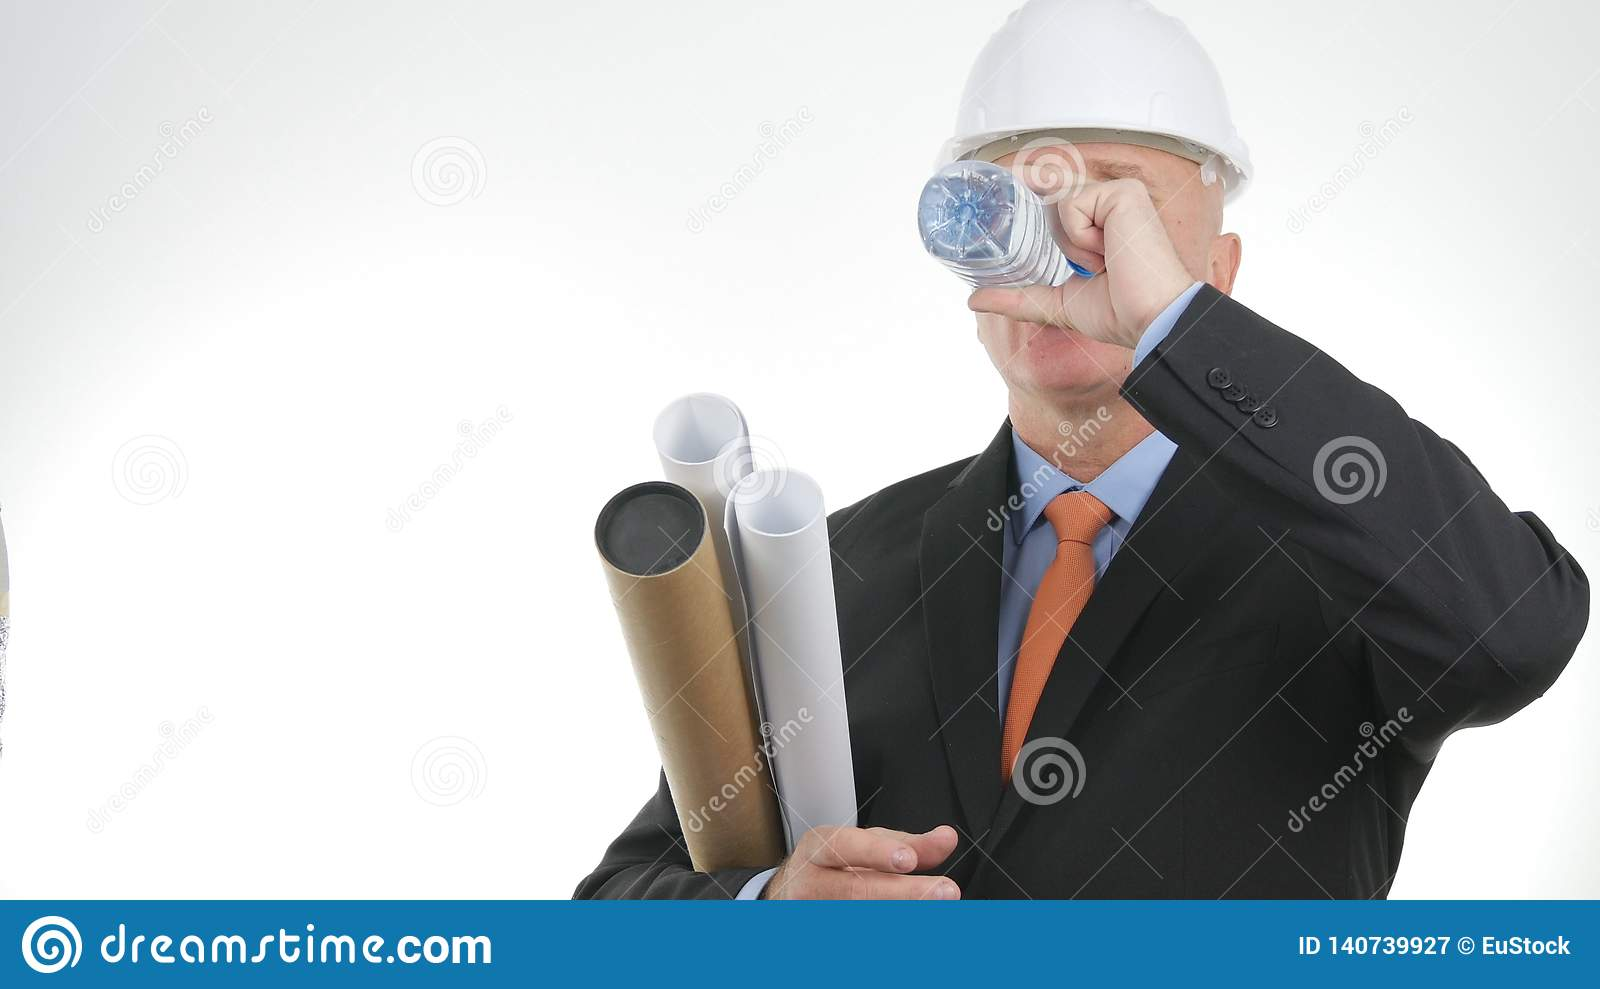 Engineer with Technical Plans and Building Projects Drinking Fresh Water